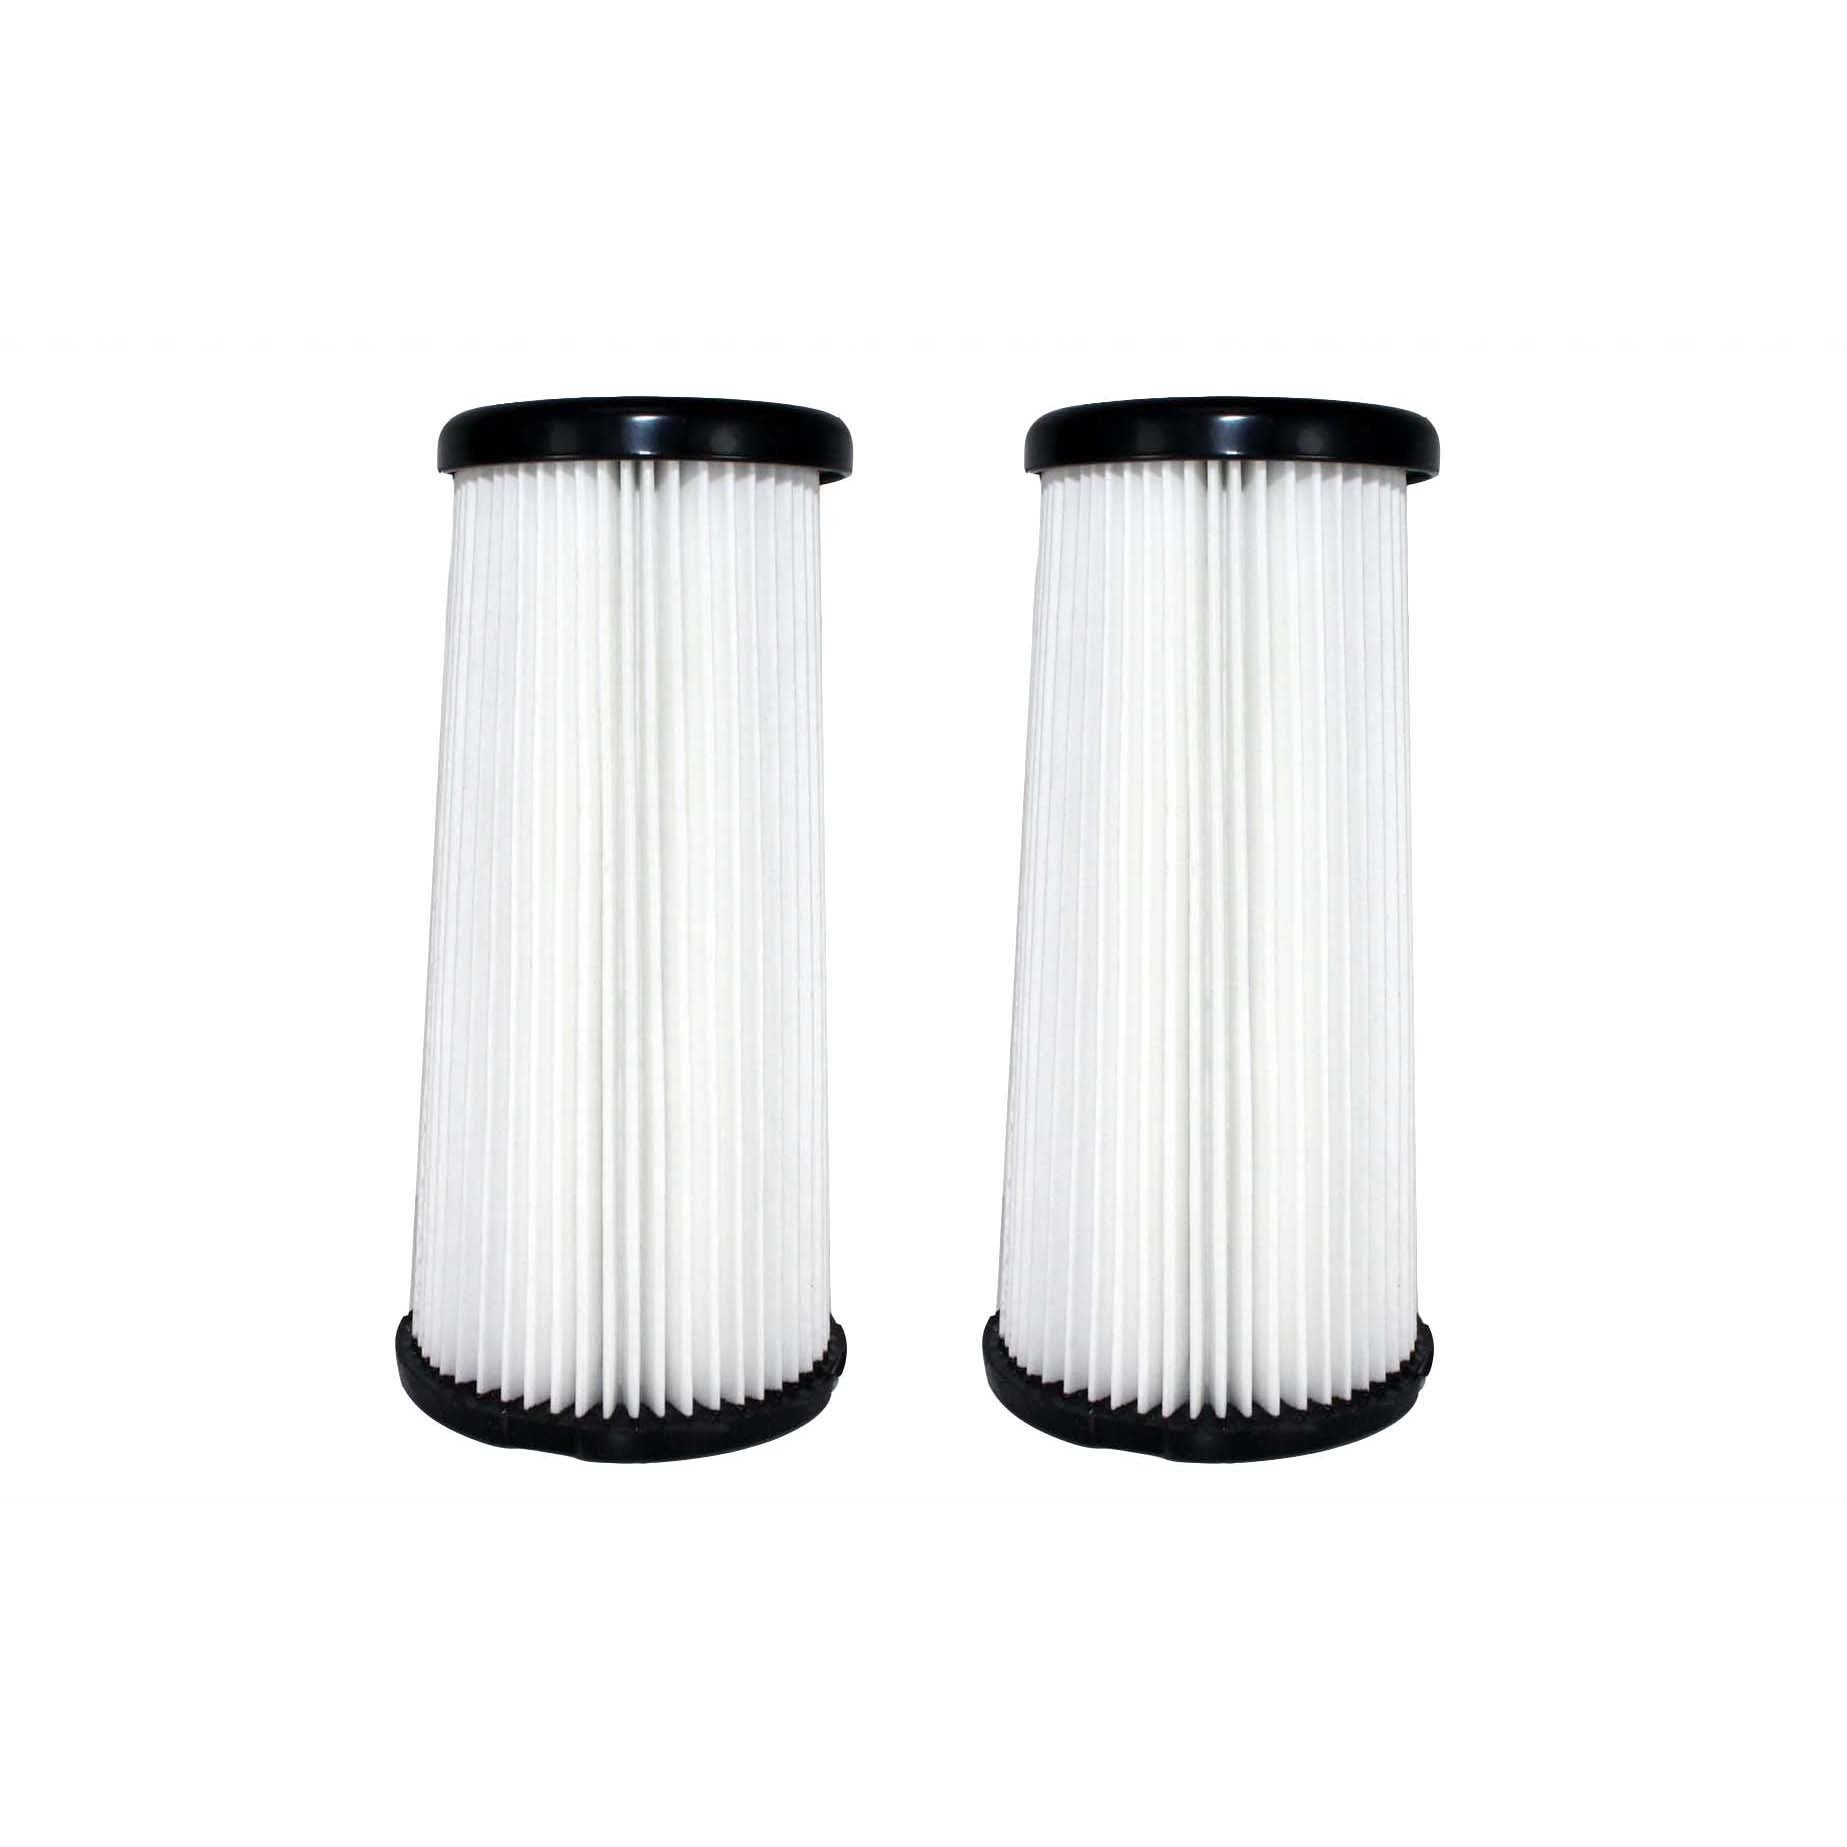 Crucial 2 Kenmore DCF5 Washable Hepa Filters Part # 61868...